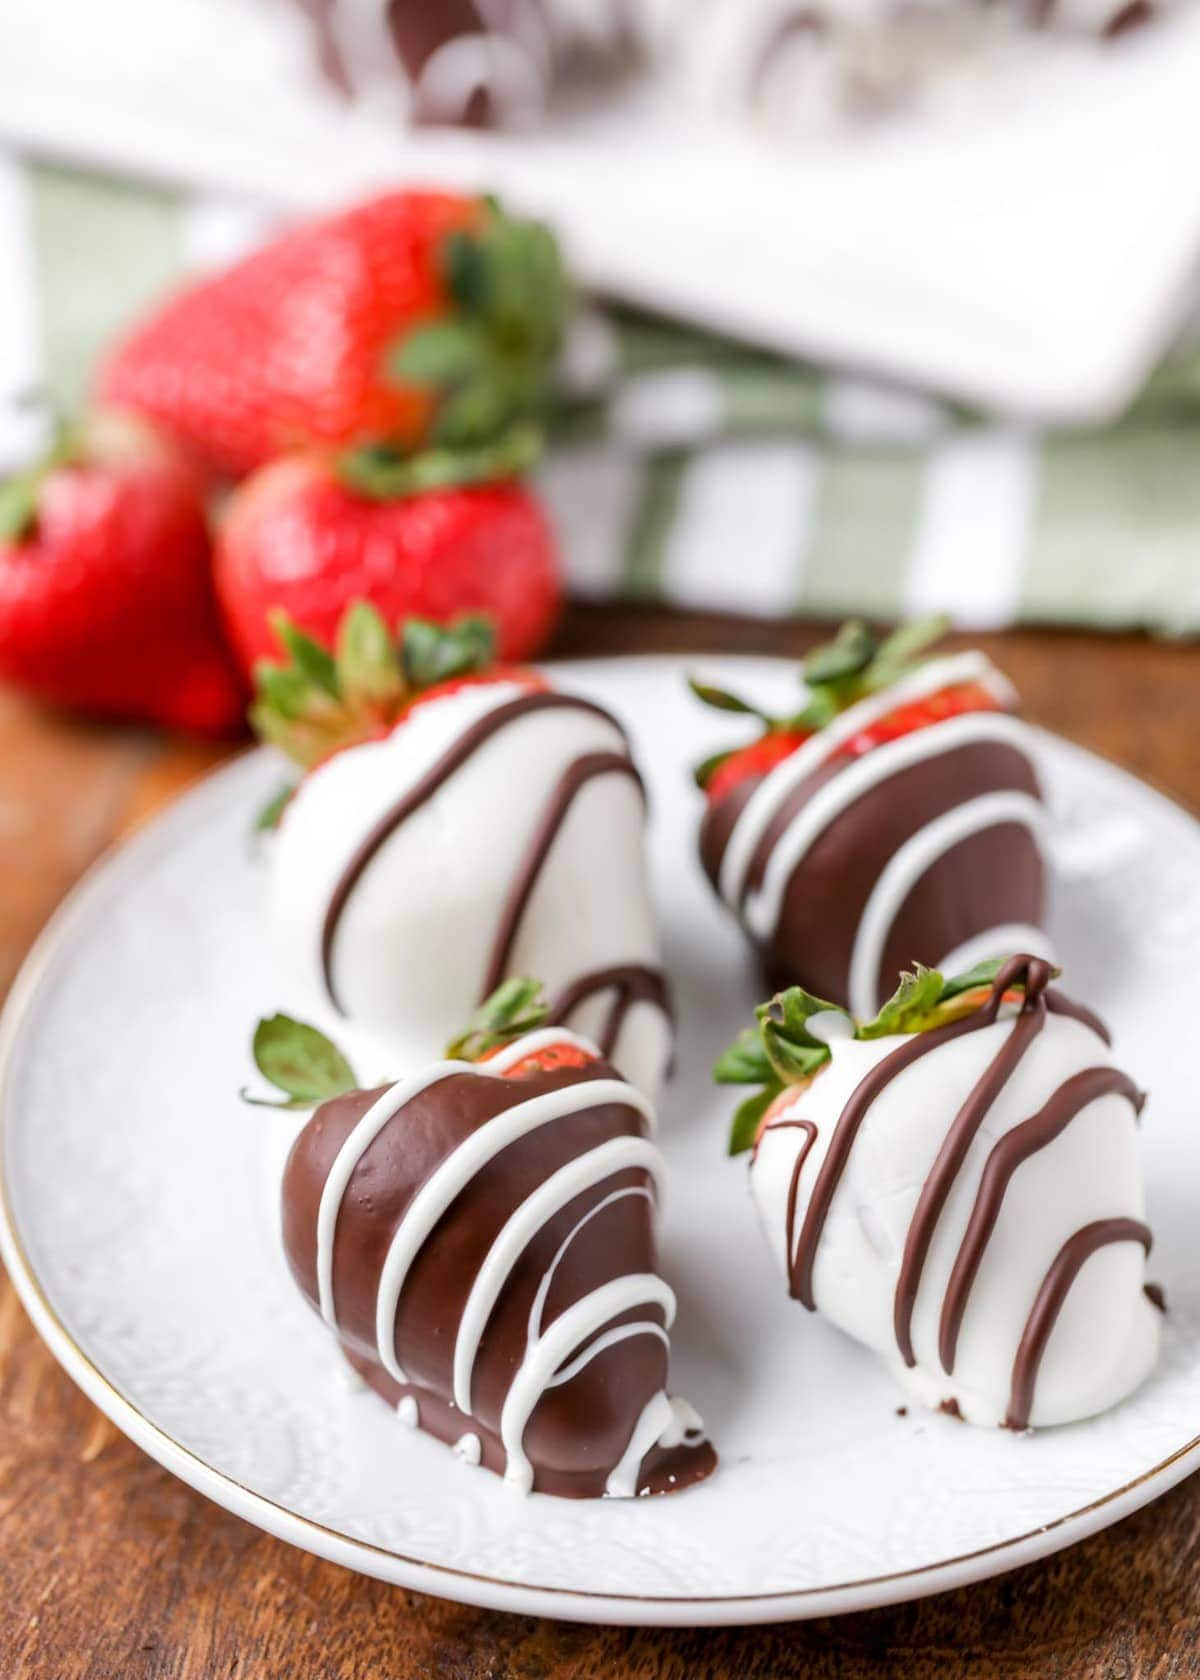 How To Make Chocolate Covered Strawberries Video Lil Luna